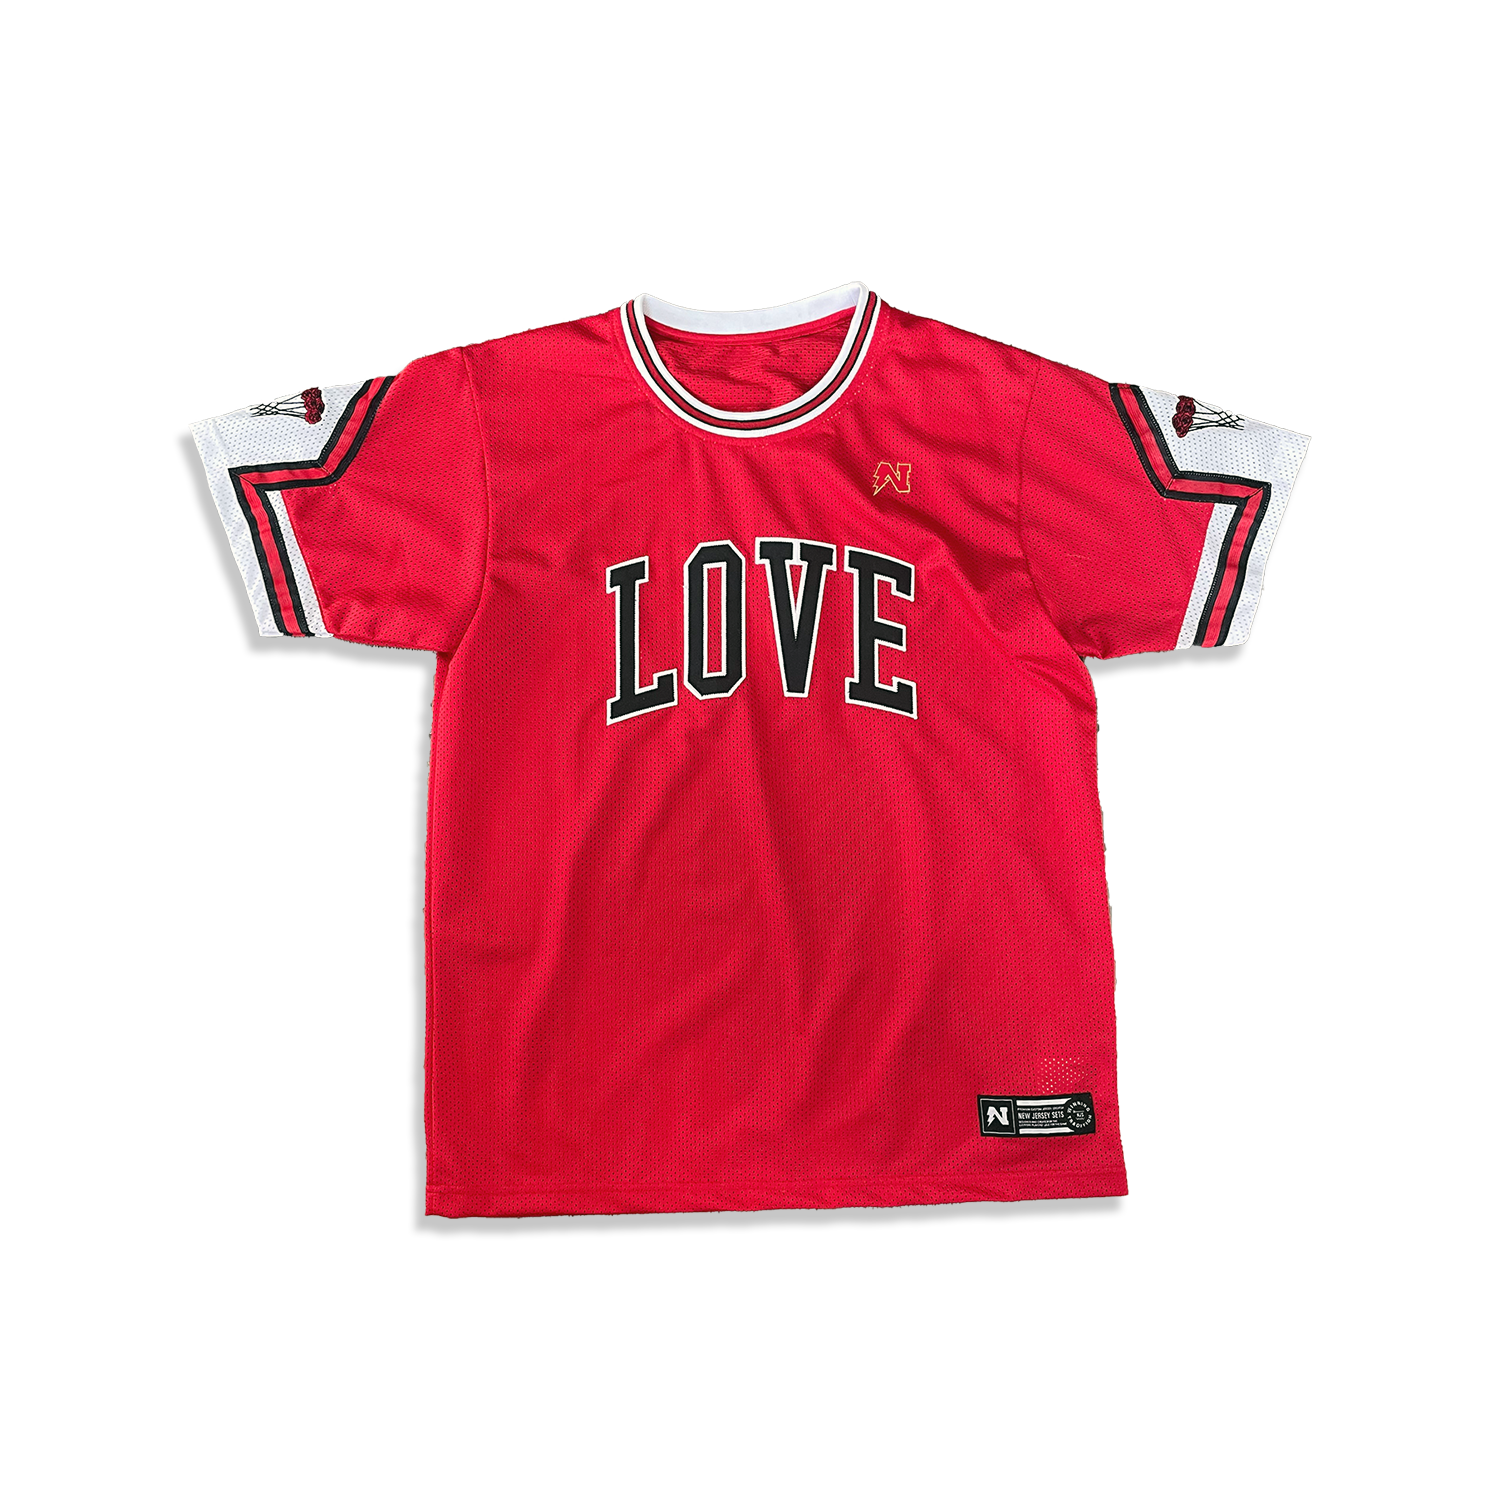 LOVE - Pro Mesh Shooting Shirt